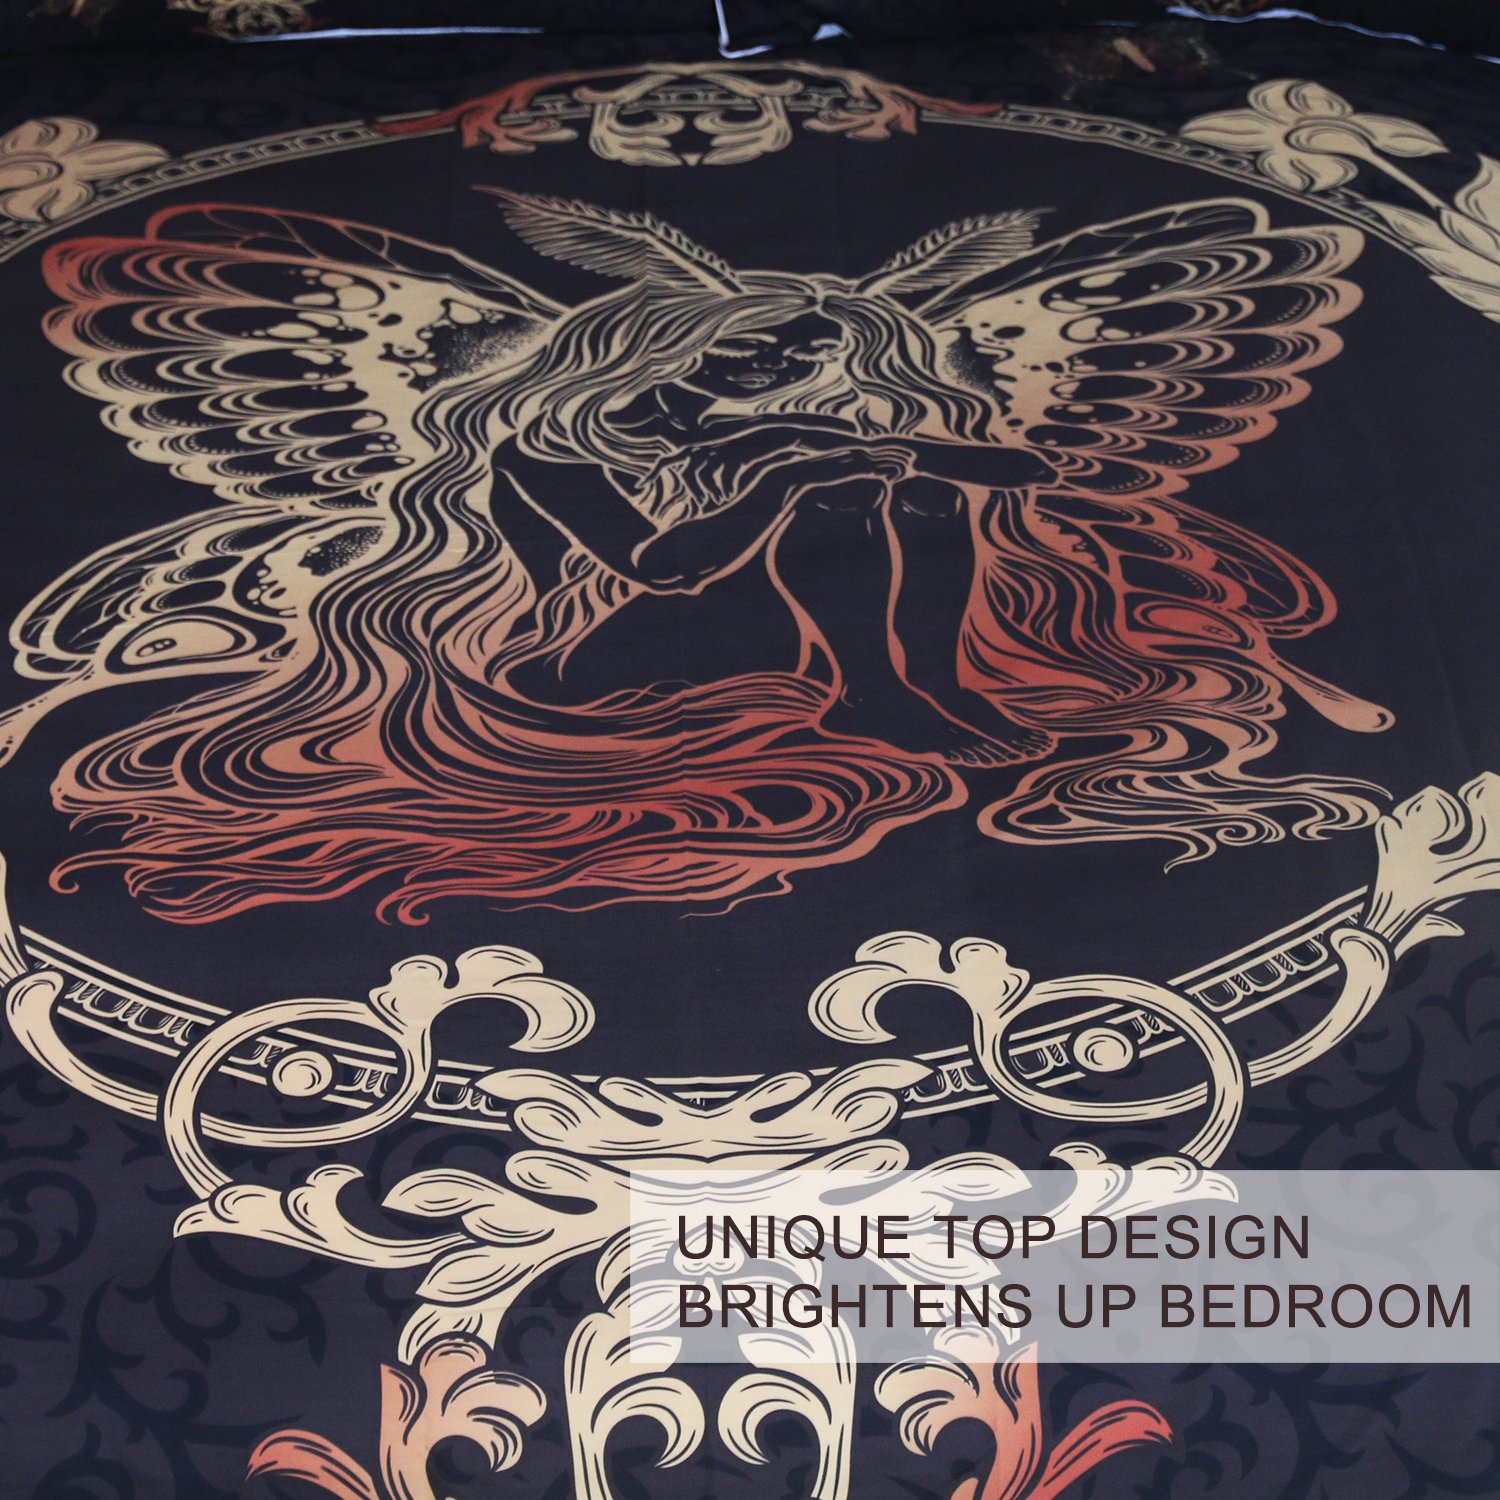 King BlessLiving Fairy Butterfly Girl Bedding 3 Piece Gold Paisley Duvet Cover Set Girly Bedspreads Chic Home Black Bed Cover